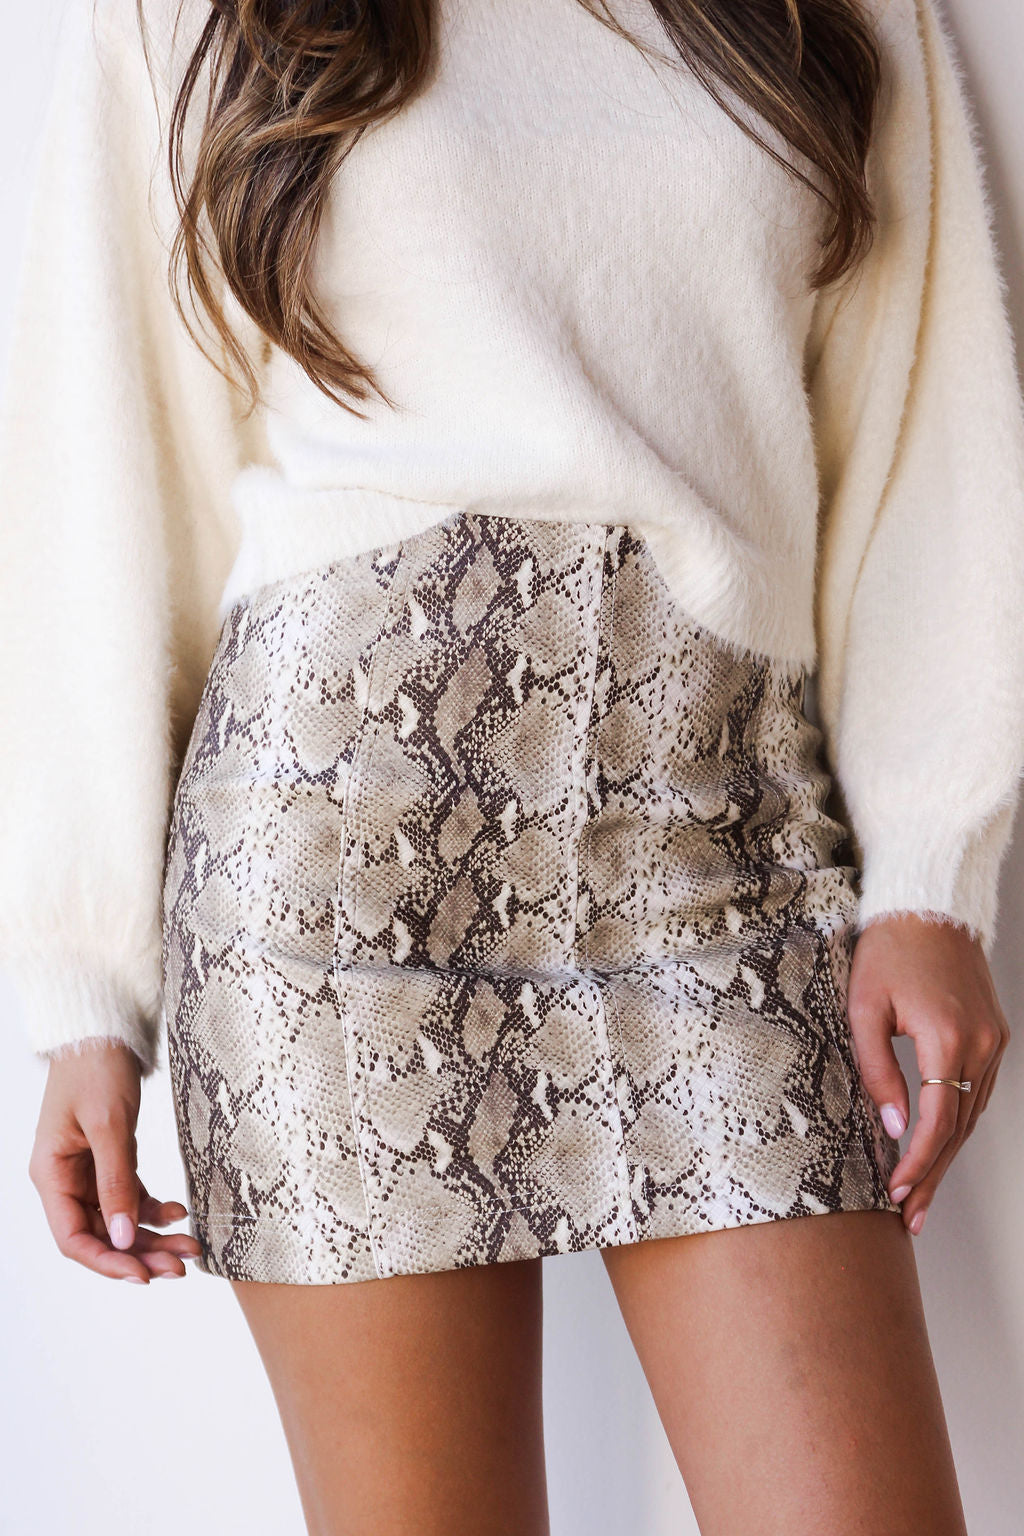 [shop name], Addie snake skin skirt